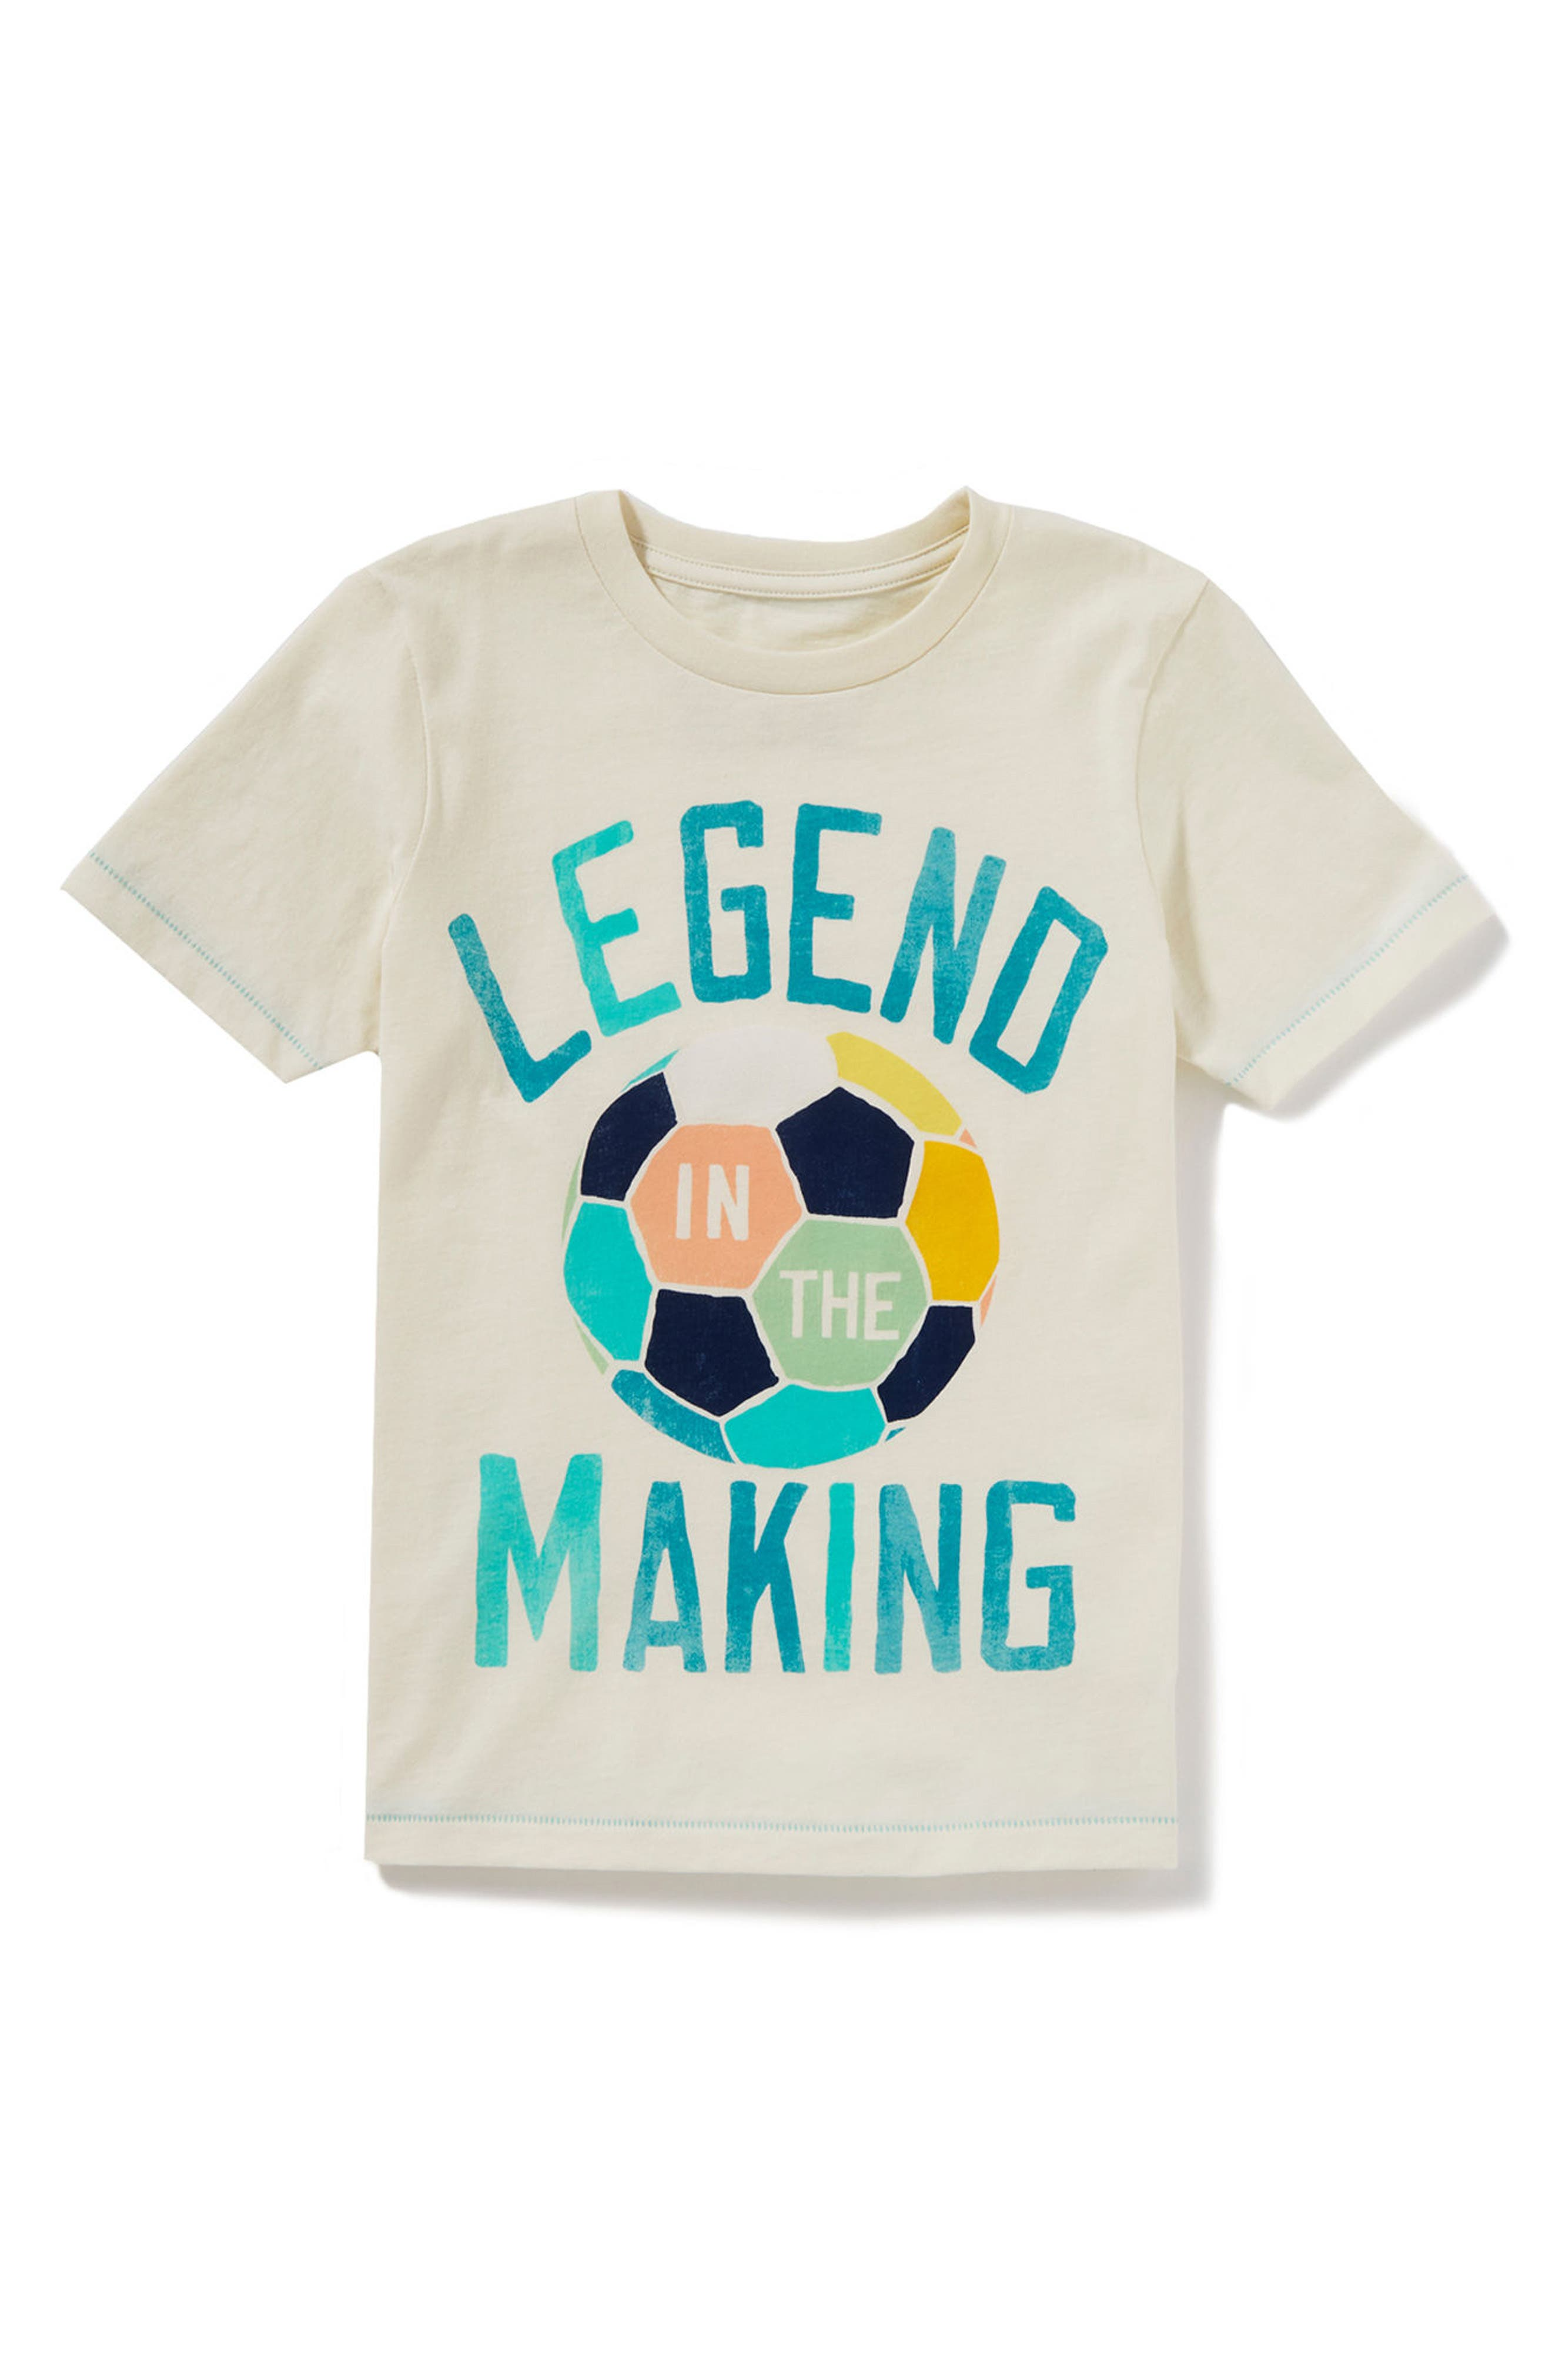 Legend in the Making Graphic T-Shirt,                             Main thumbnail 1, color,                             Ivory